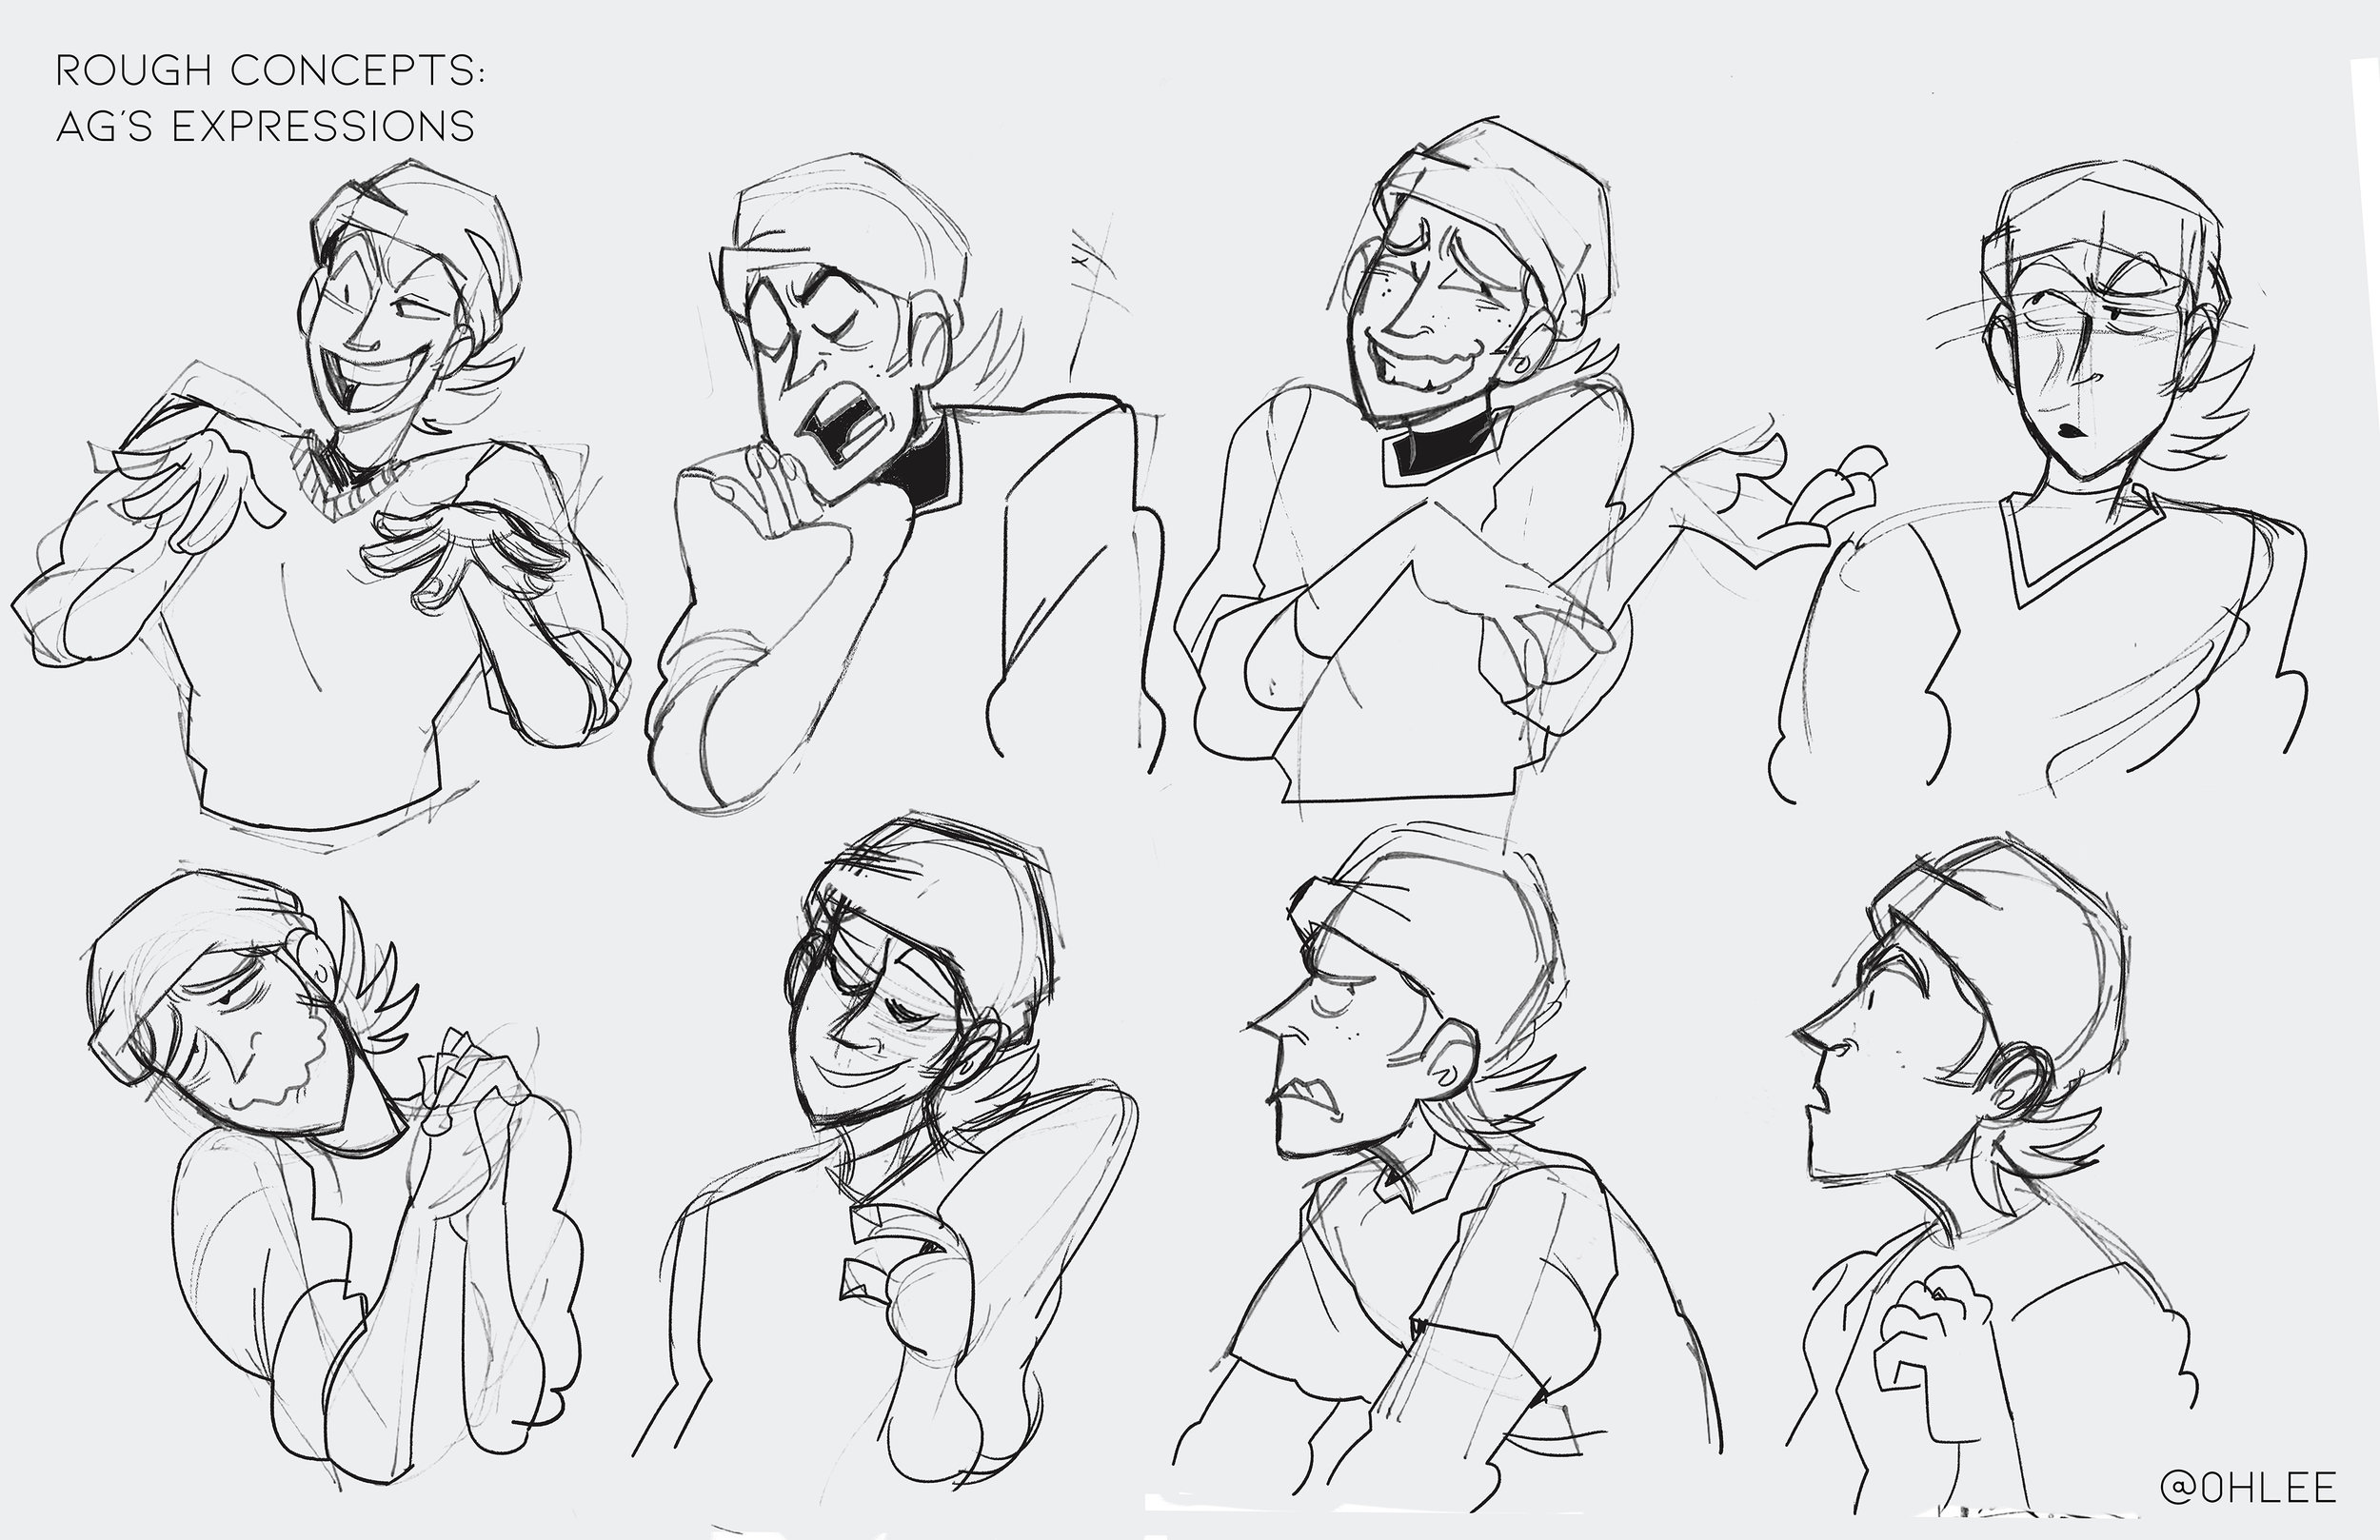 Ags_expression exploration.jpg